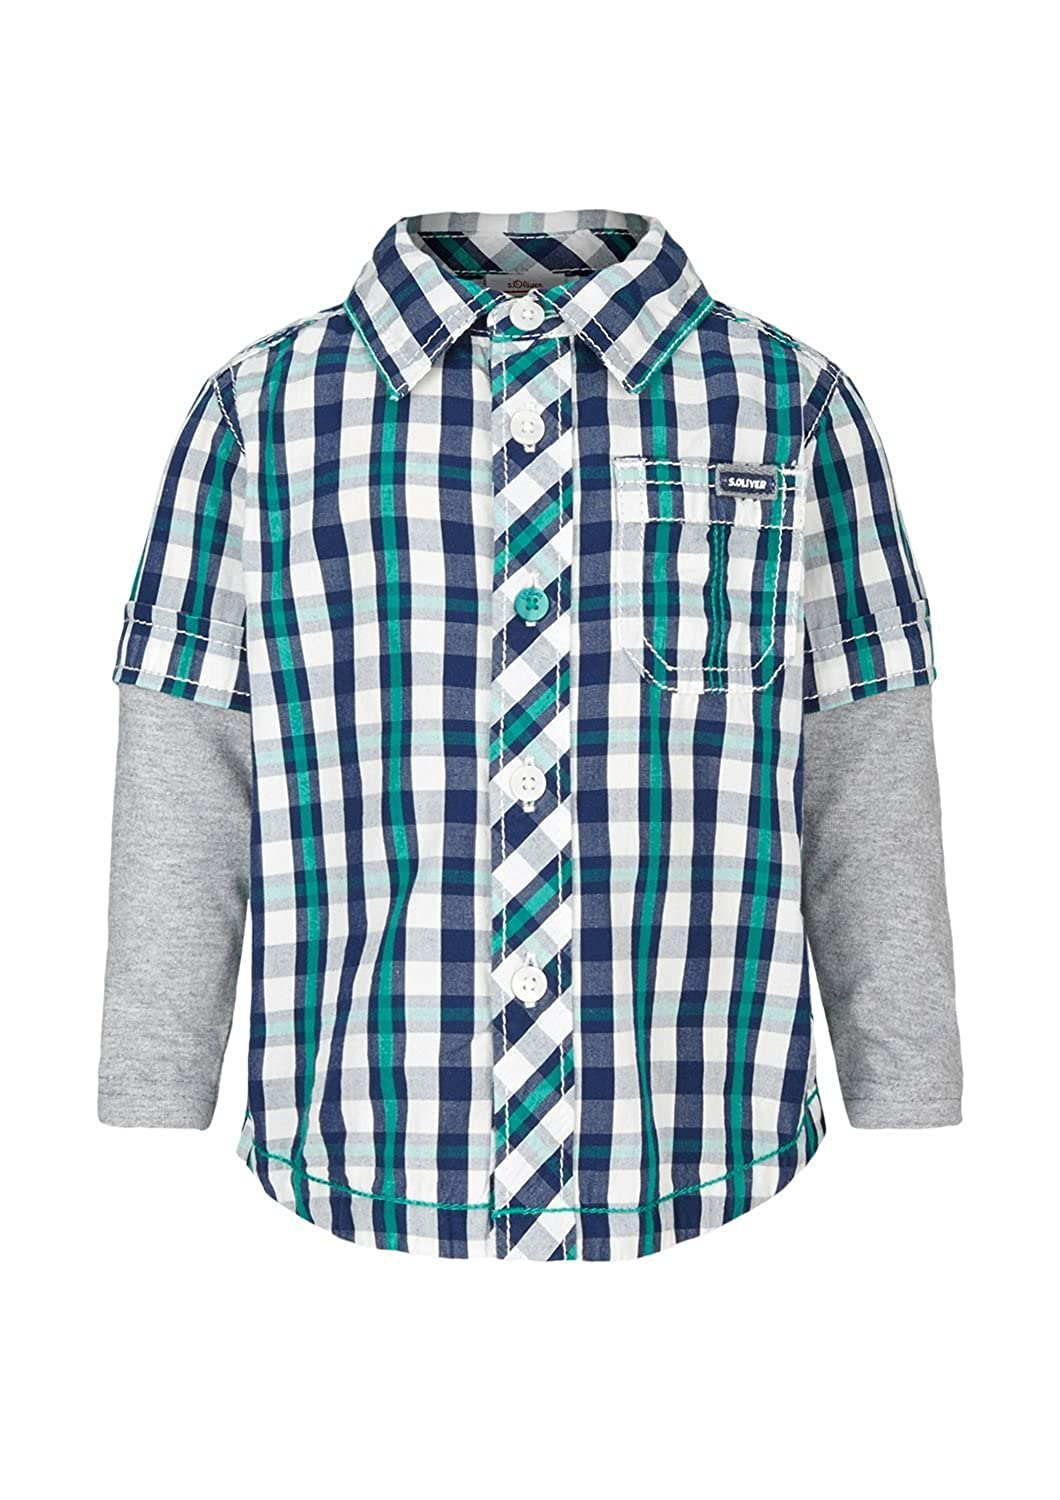 s.Oliver Baby Boys' Plaid Shirt with Jersey Sleeves, Sizes 12M-24M